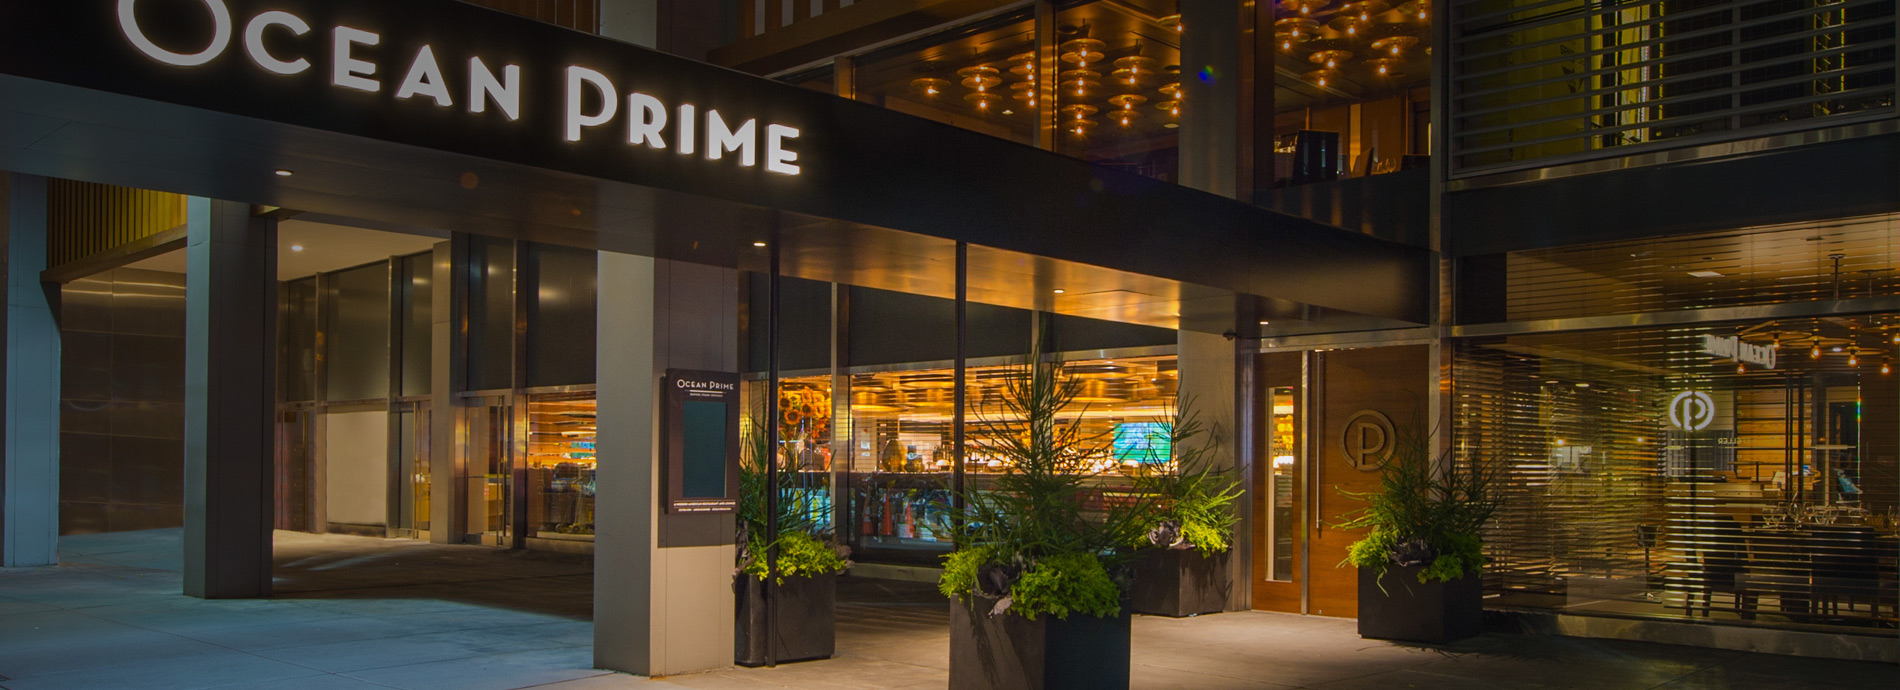 Ocean prime new york city prime steak fresh seafood fish for Fish bar nyc